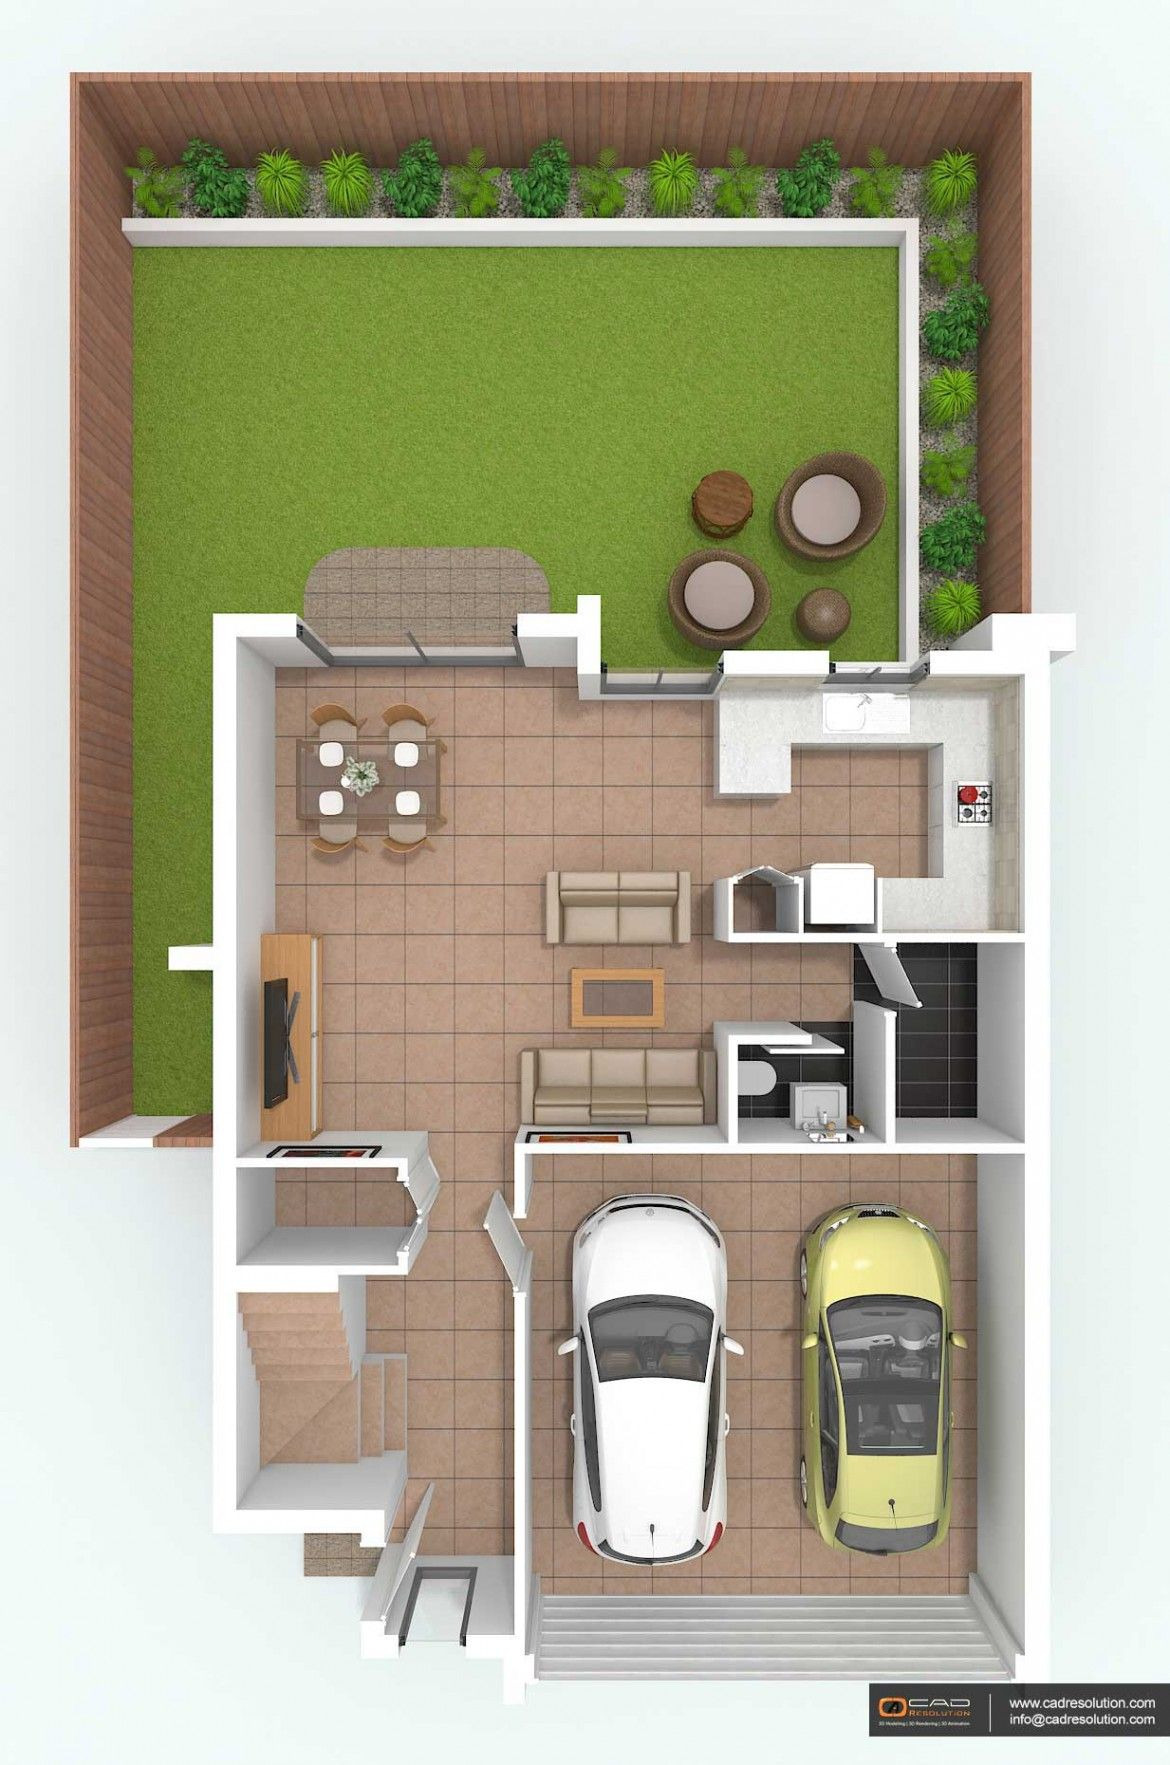 House Plan Design software New Simple Tips Your Own Home Improvement Projects